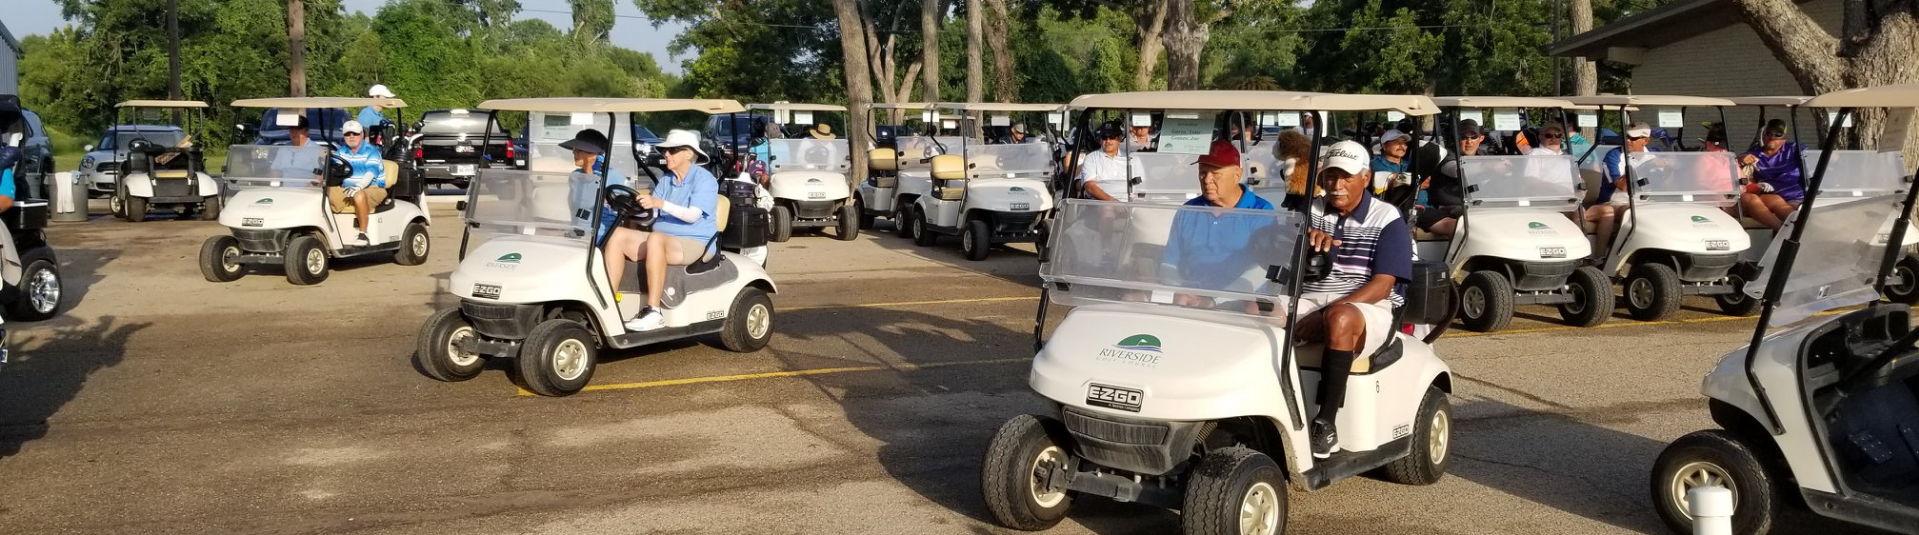 Golfers in golf carts get ready to ride out at Riverside Golf Course in Victoria, Texas